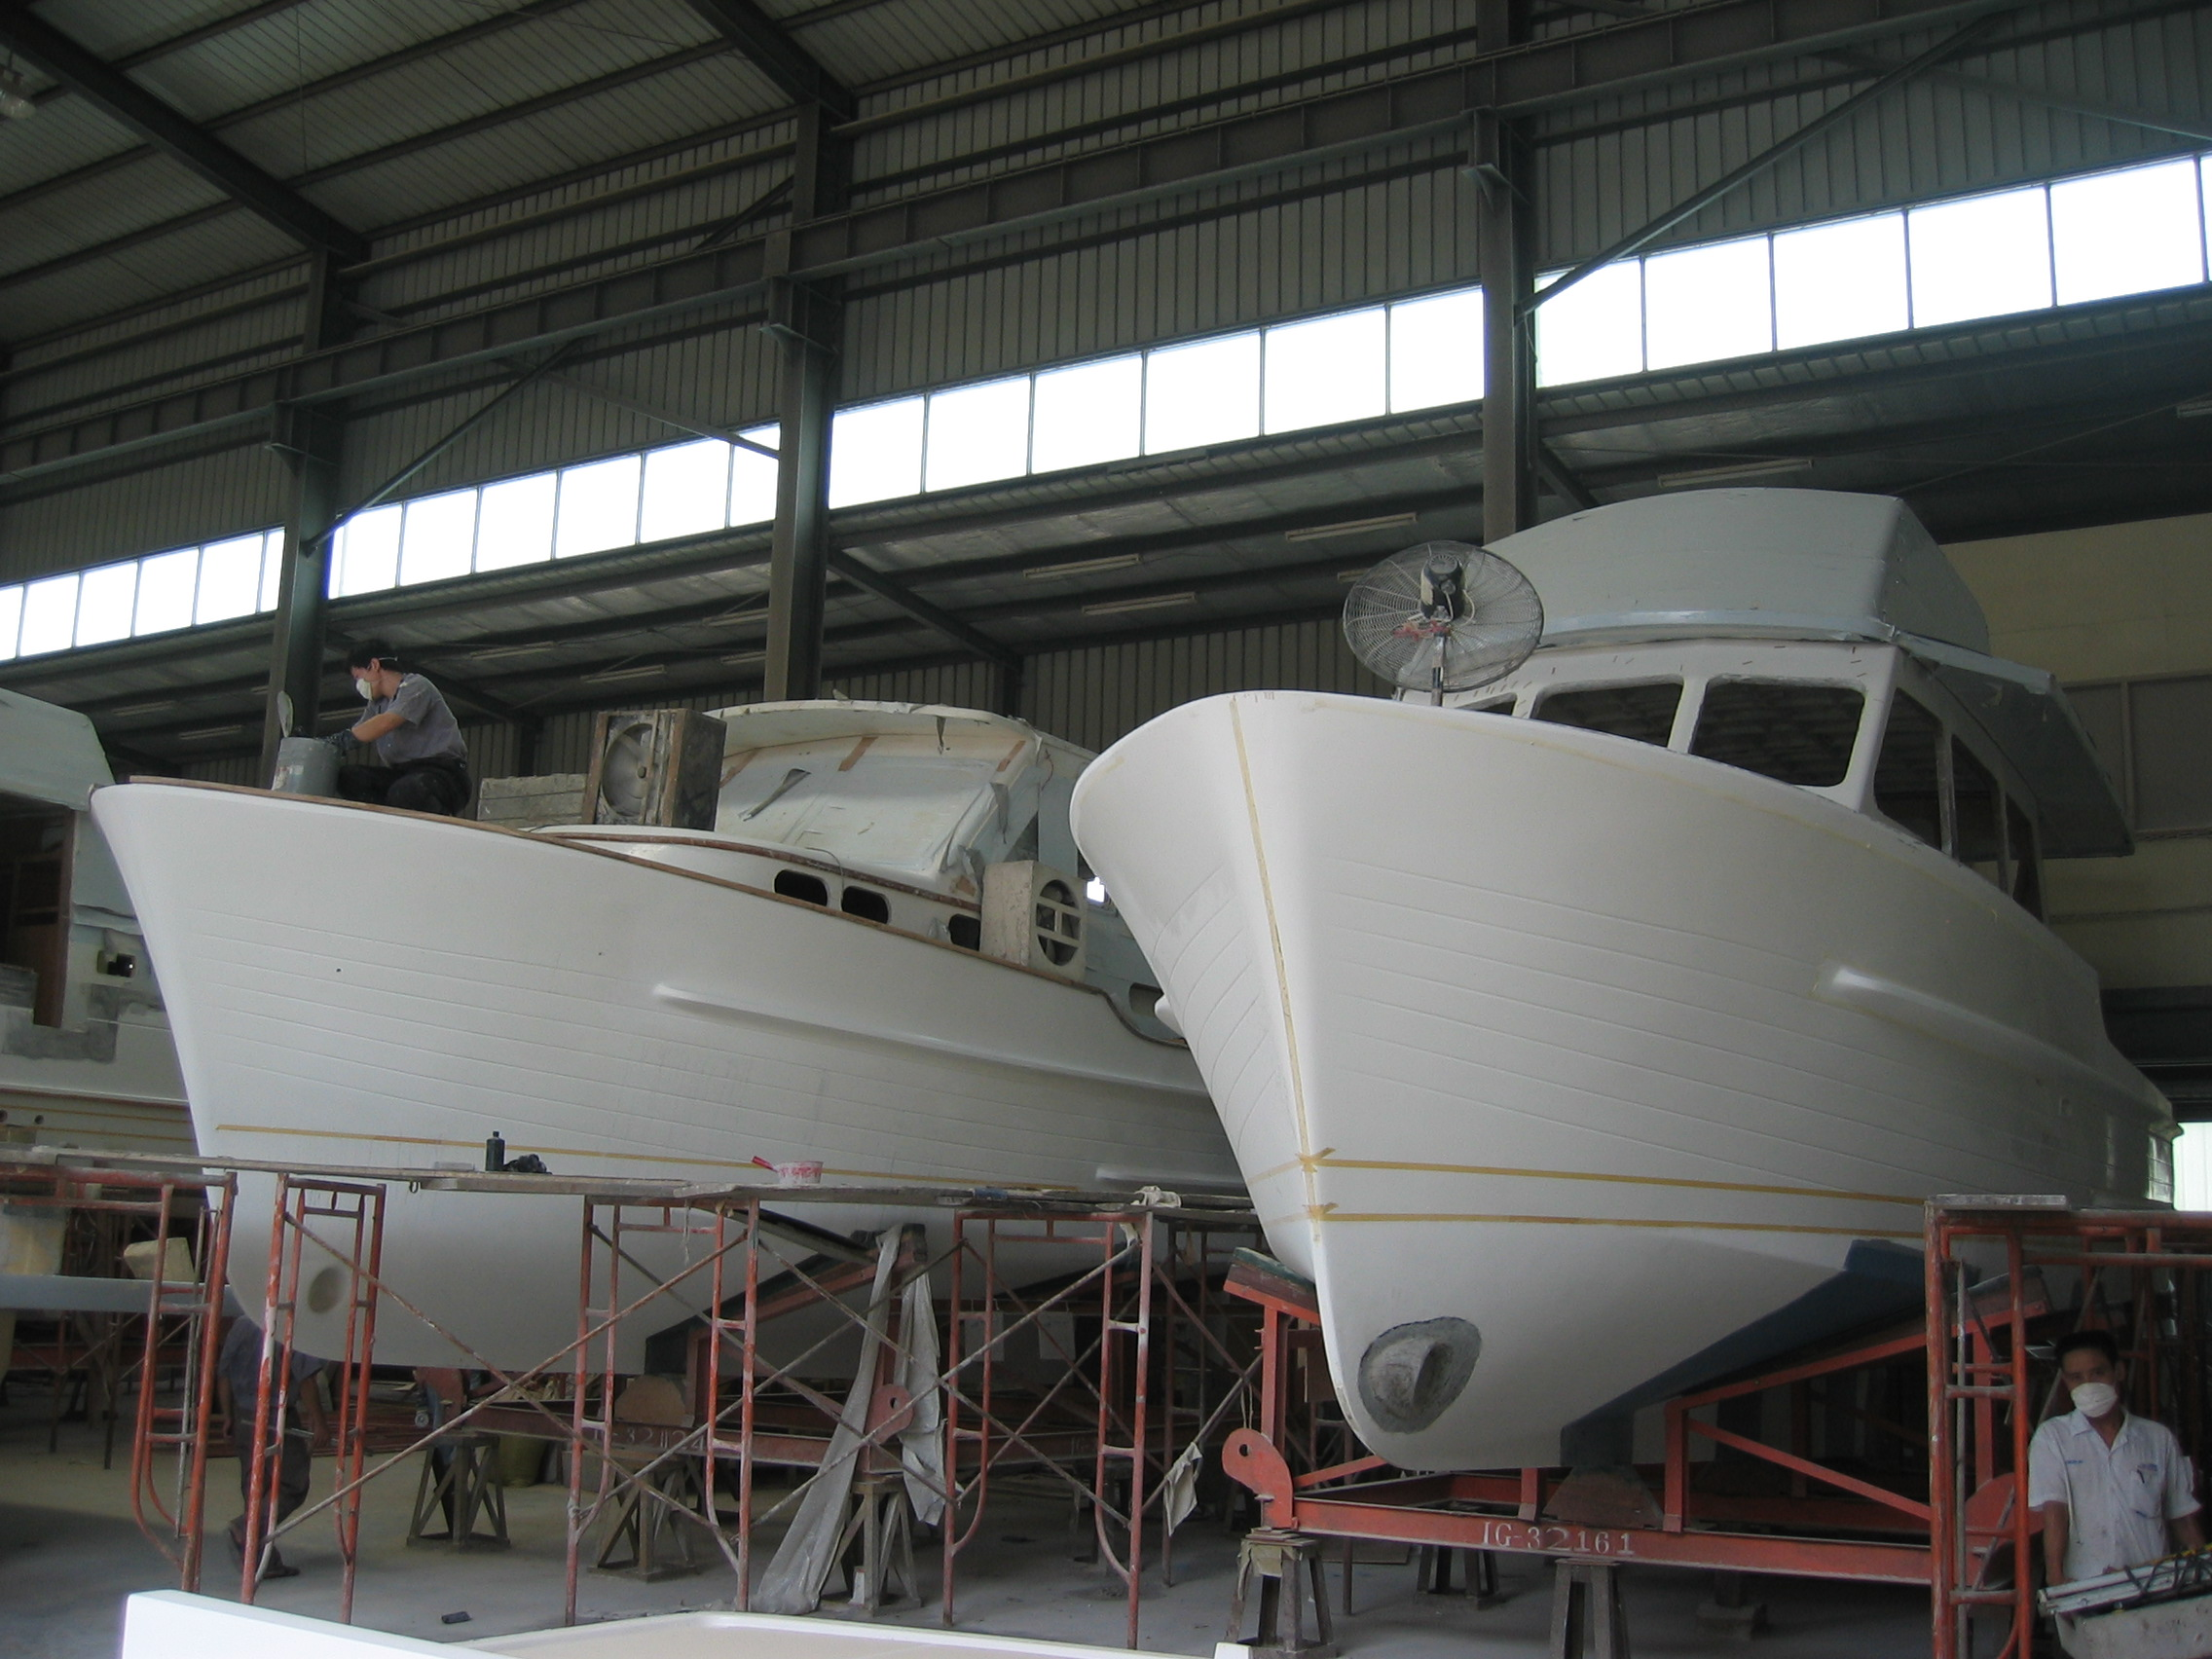 An Island Gypsy 32 and Gourmet Cruiser 32 under construction at Jet Tern Marine Ltd in Dong Guan Southern China. 2005.